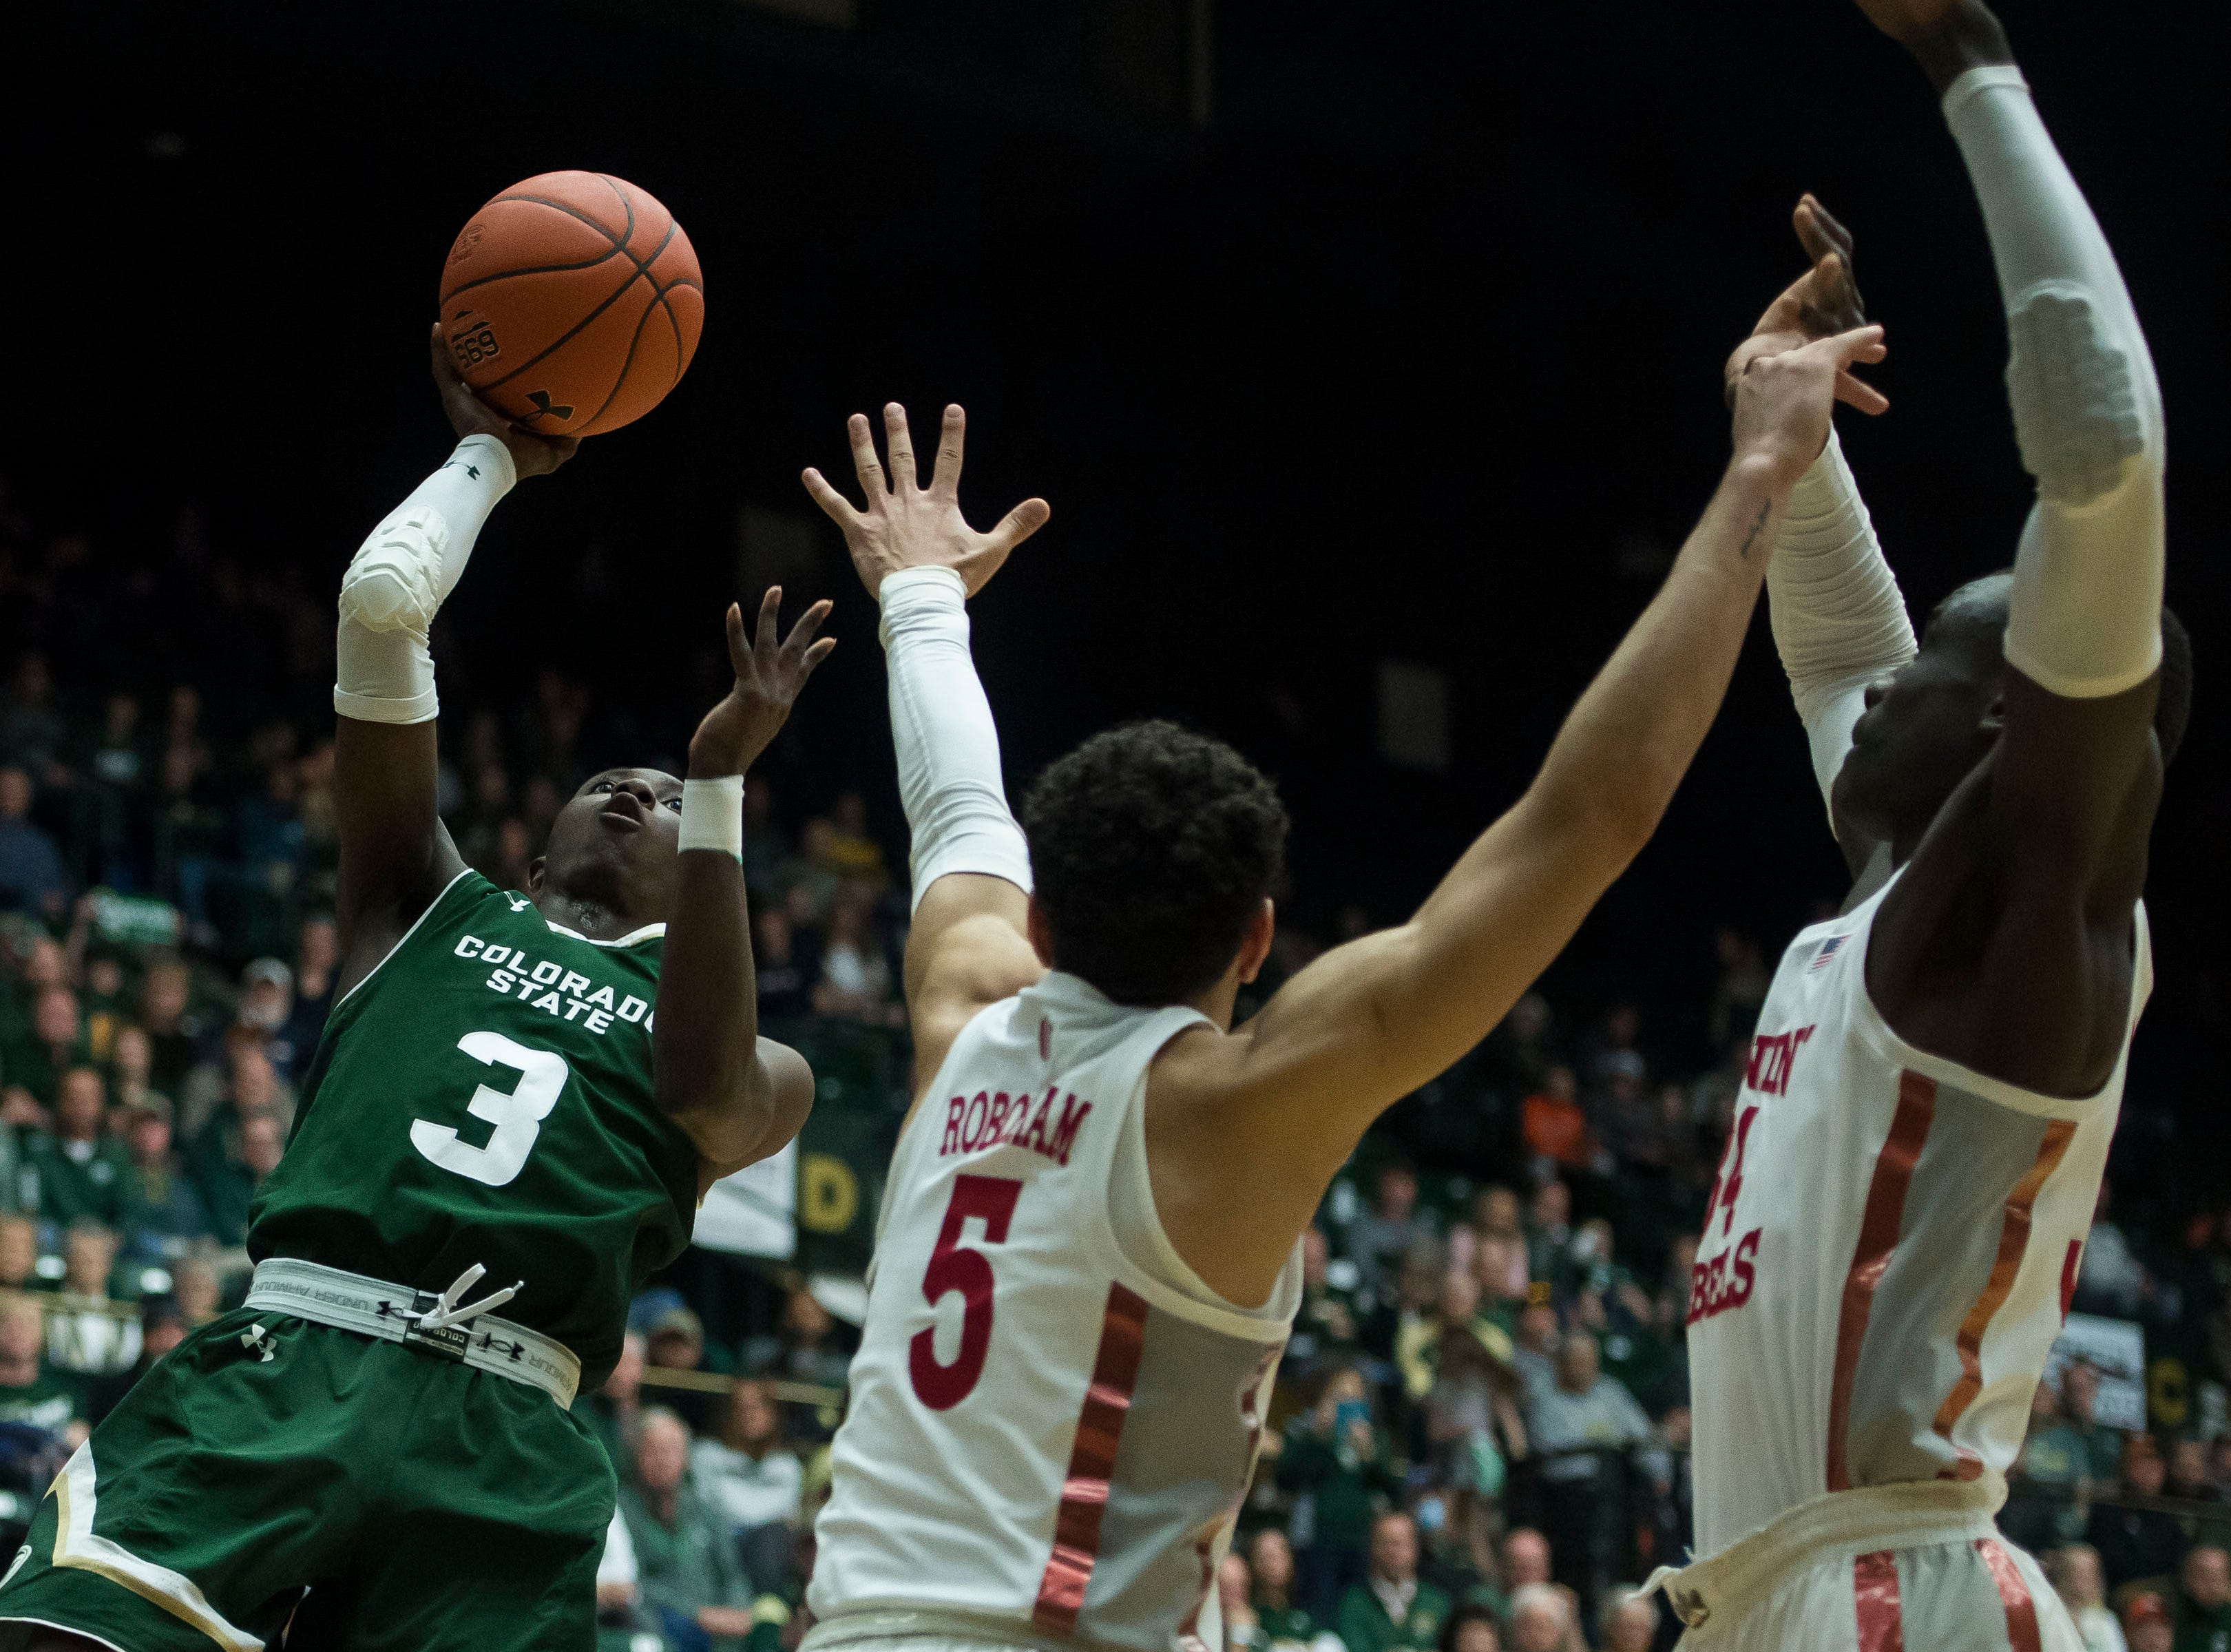 Colorado State University freshman guard Kendle Moore (3) puts a shot up over University of Nevada Las Vegas senior guard Noah Robotham (5) on Saturday, March 9, 2019, at Moby Arena in Fort Collins, Colo.